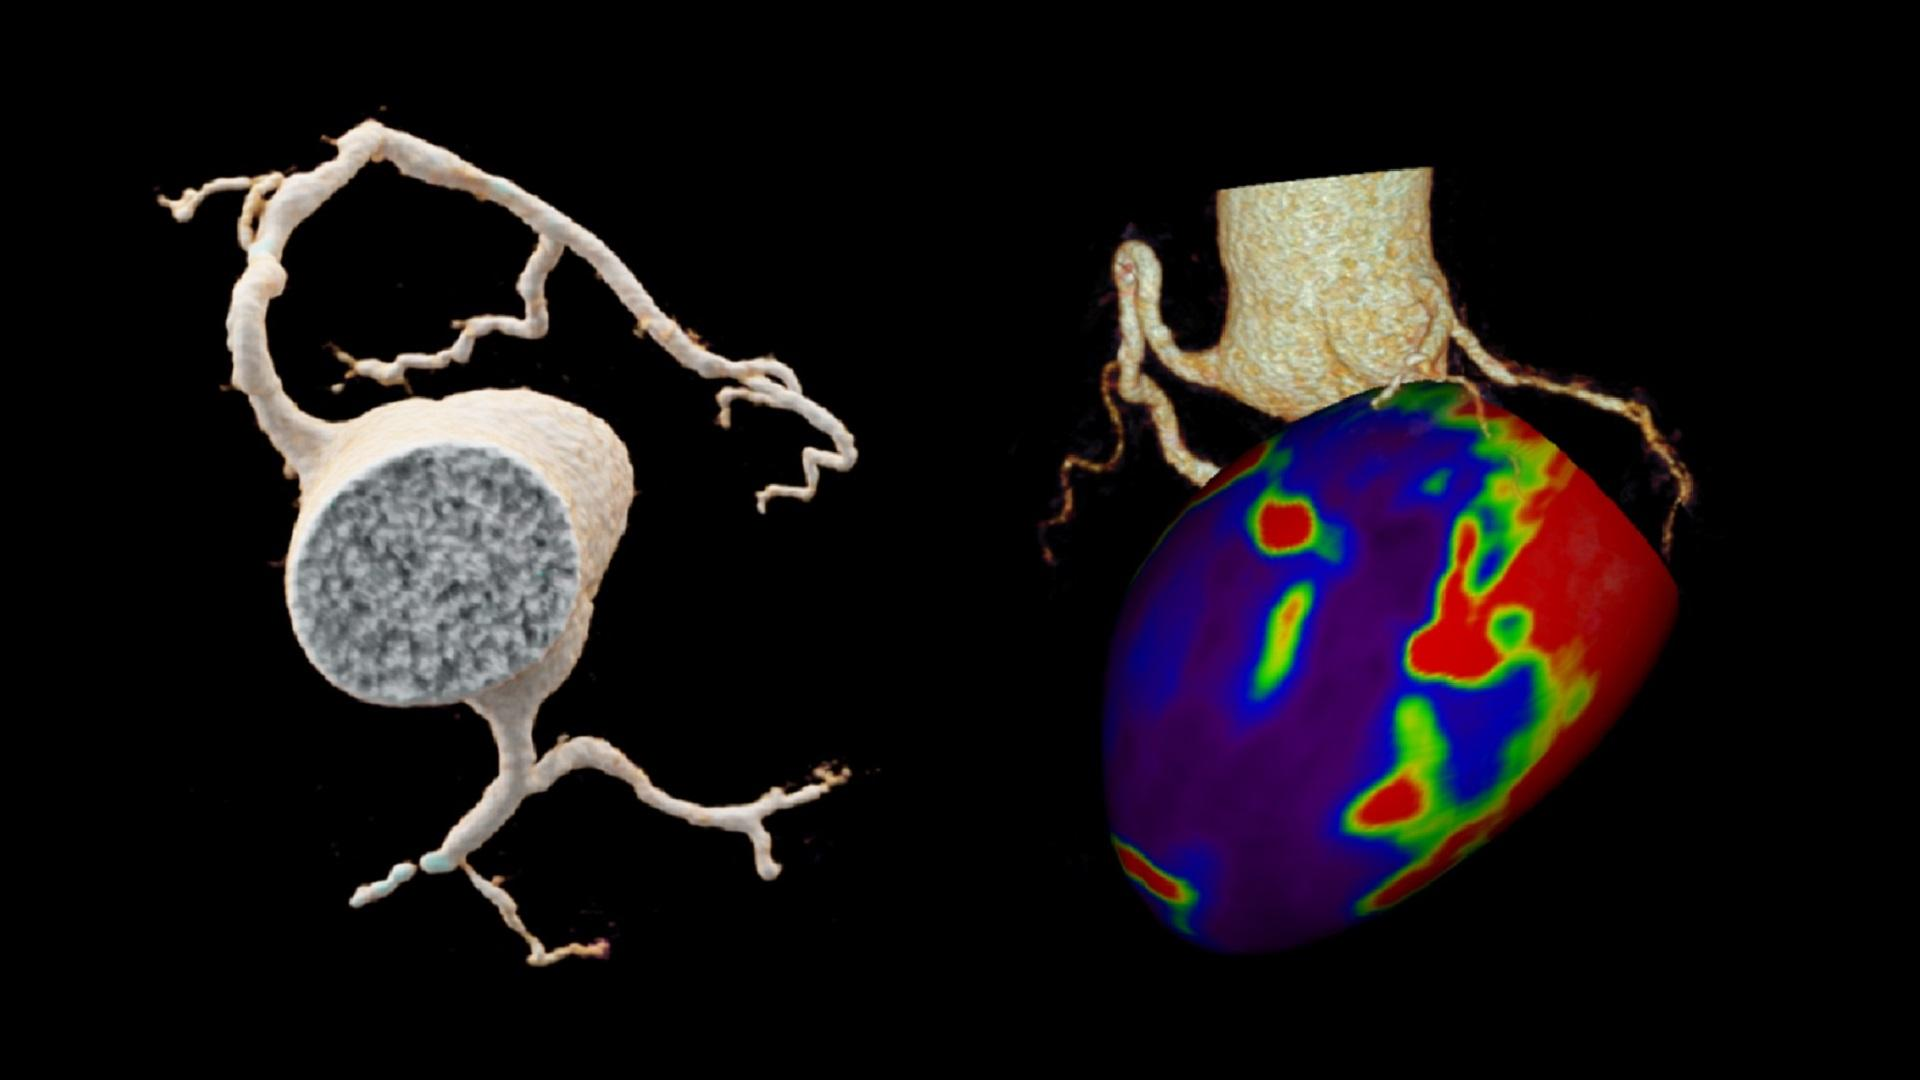 A VRT image shows a LAD occlusion.  A hybrid view, containing the coronary tree and myocardial enhancement, demonstrates contrast perfusion defects.